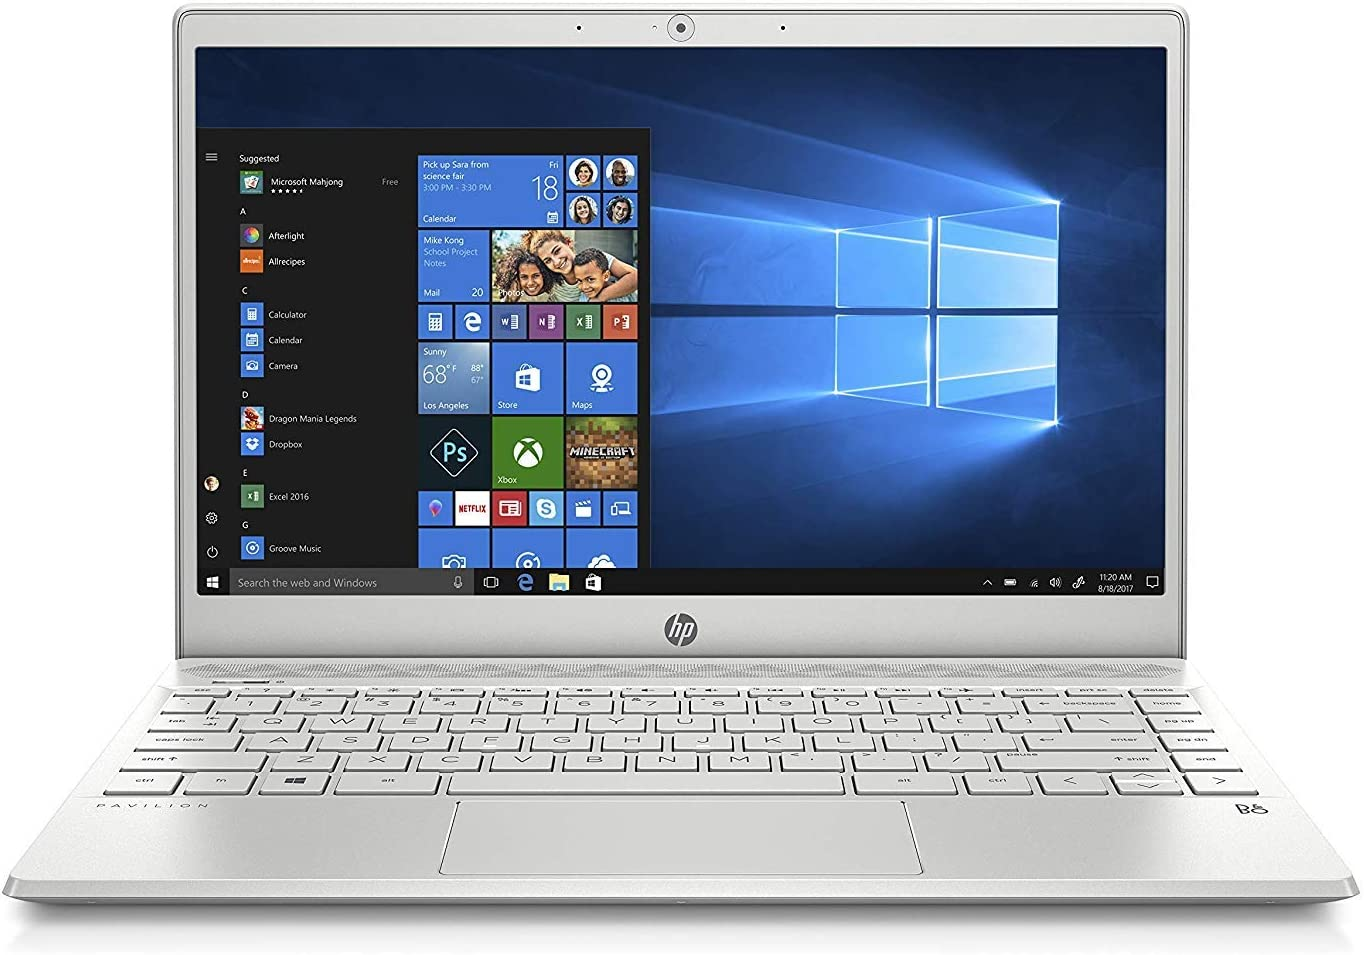 Latest_HP-Pavilion 13-inch Light and Thin High Performance Laptop,Intel Core i5-8265U Processor,8GB DDR4 RAM,256GB SSD, Webcam,Wireless+Bluetooth, HDMI,Window 10